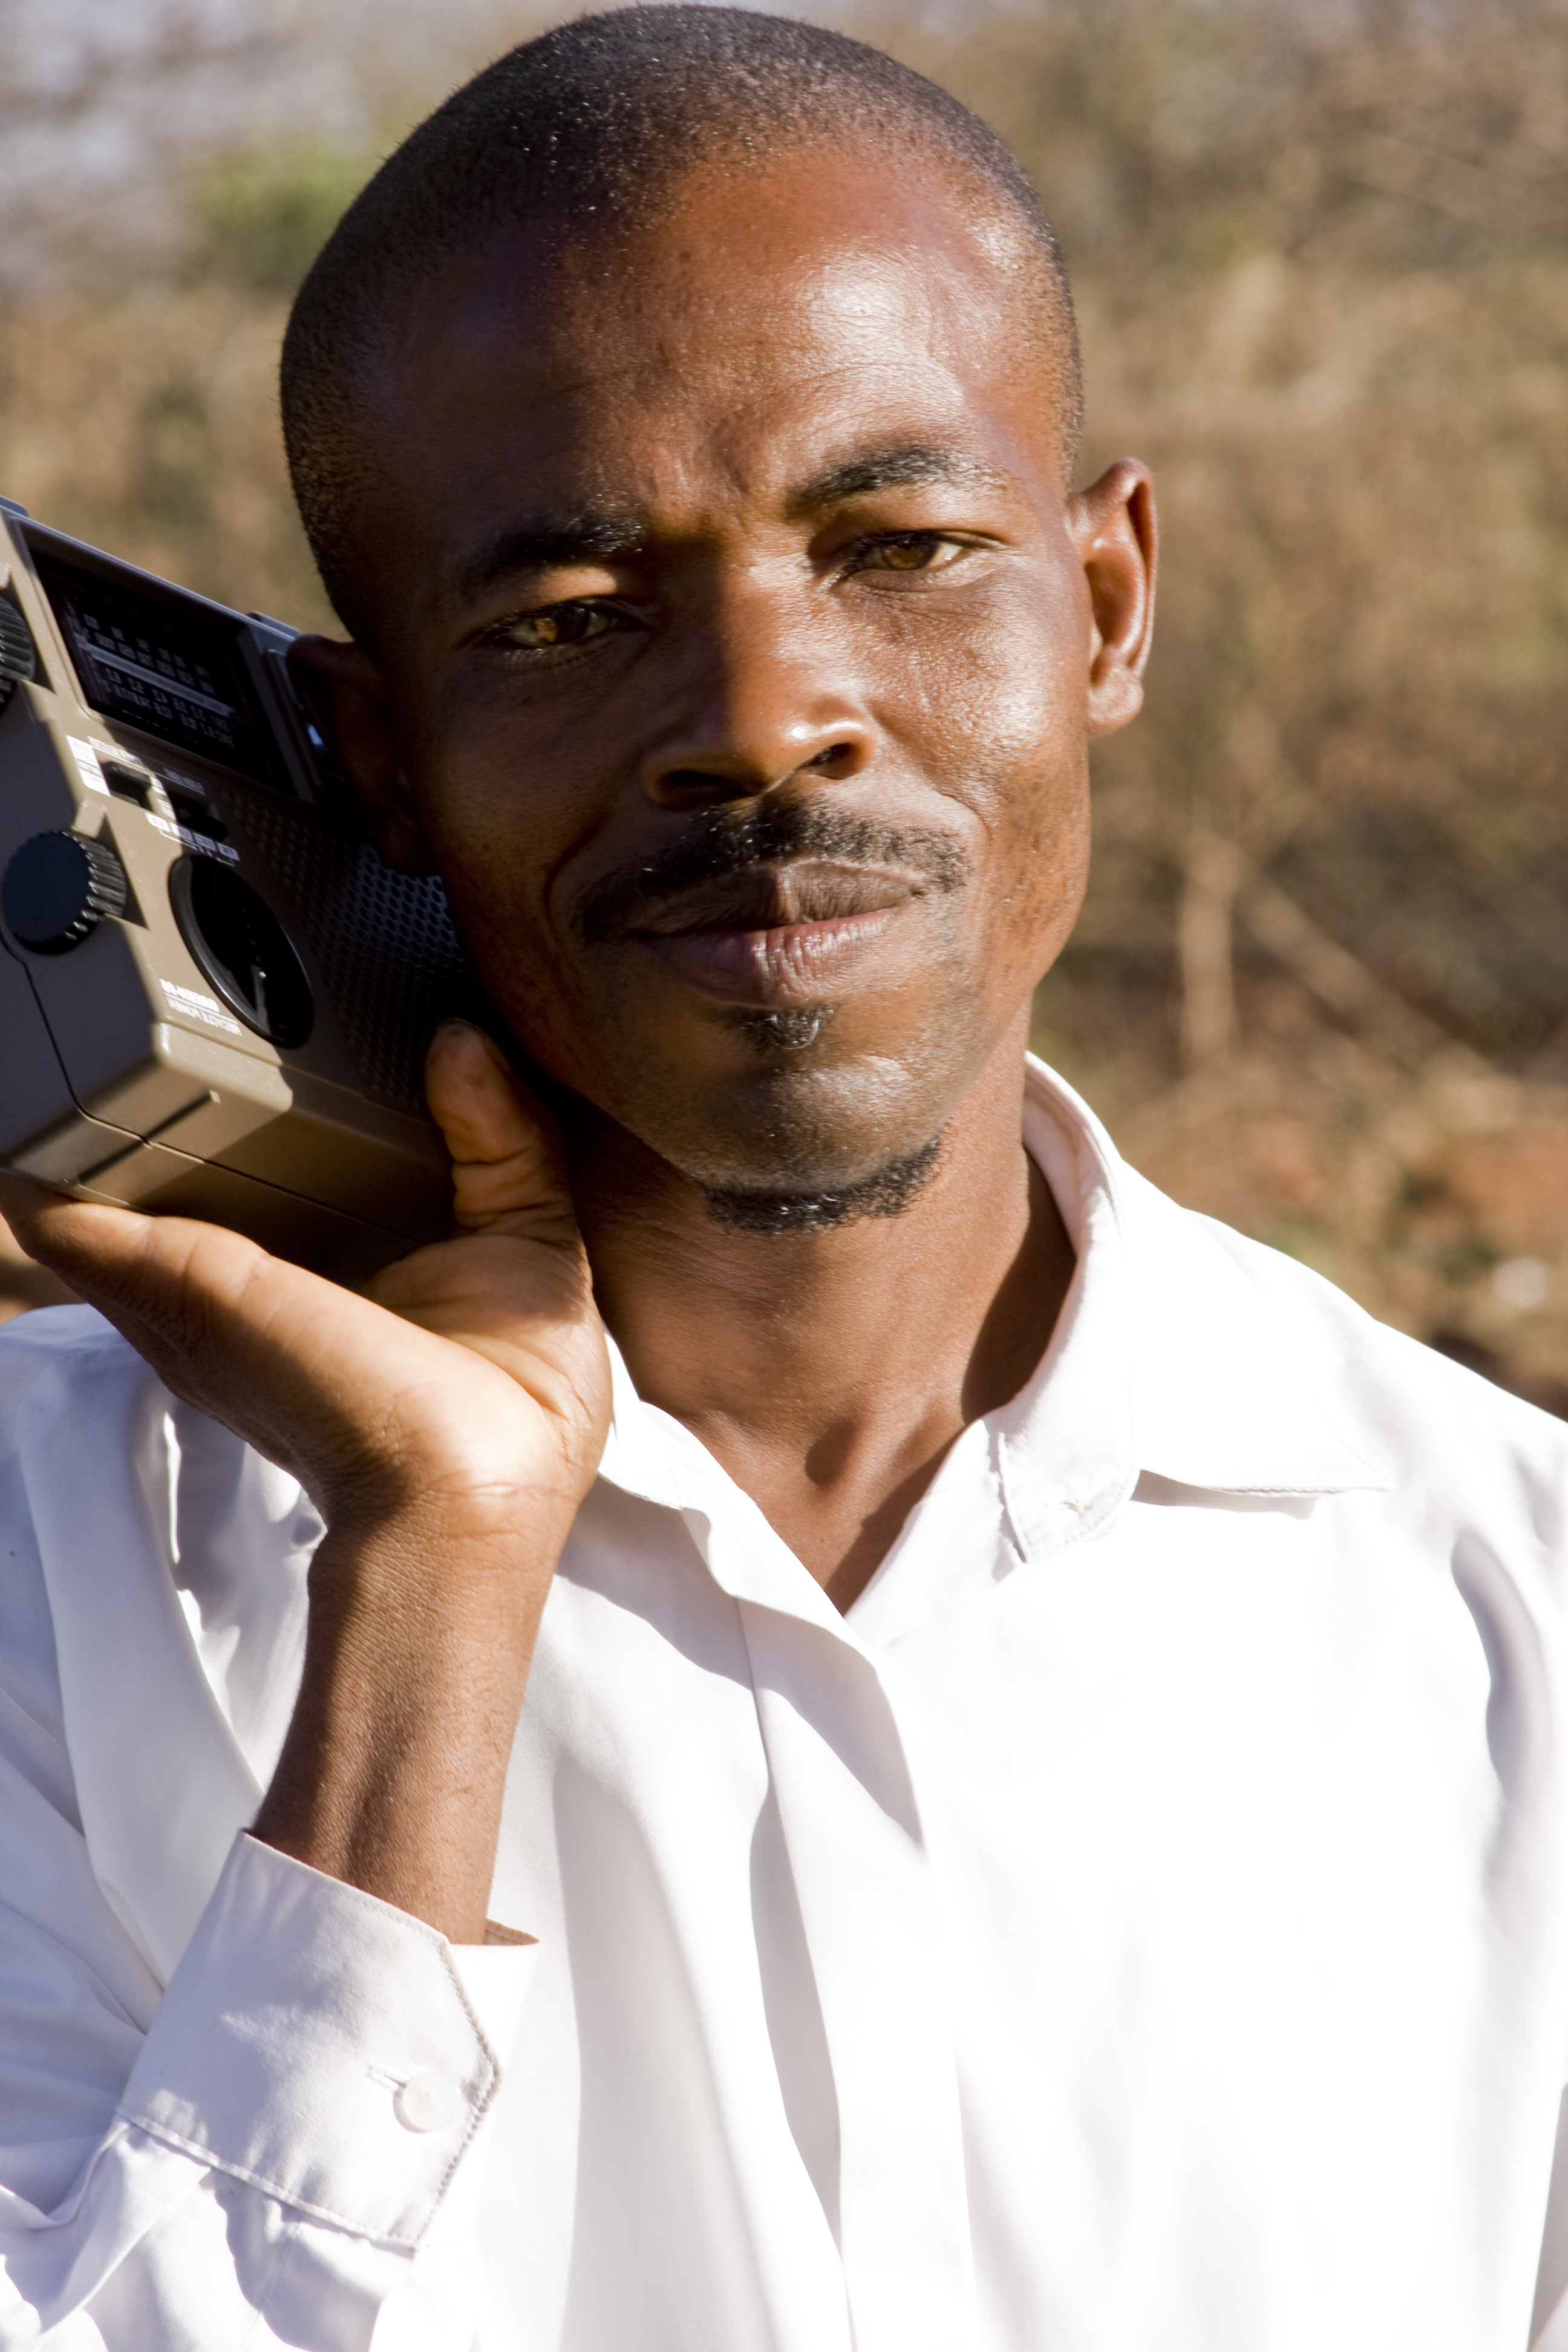 African man with radio